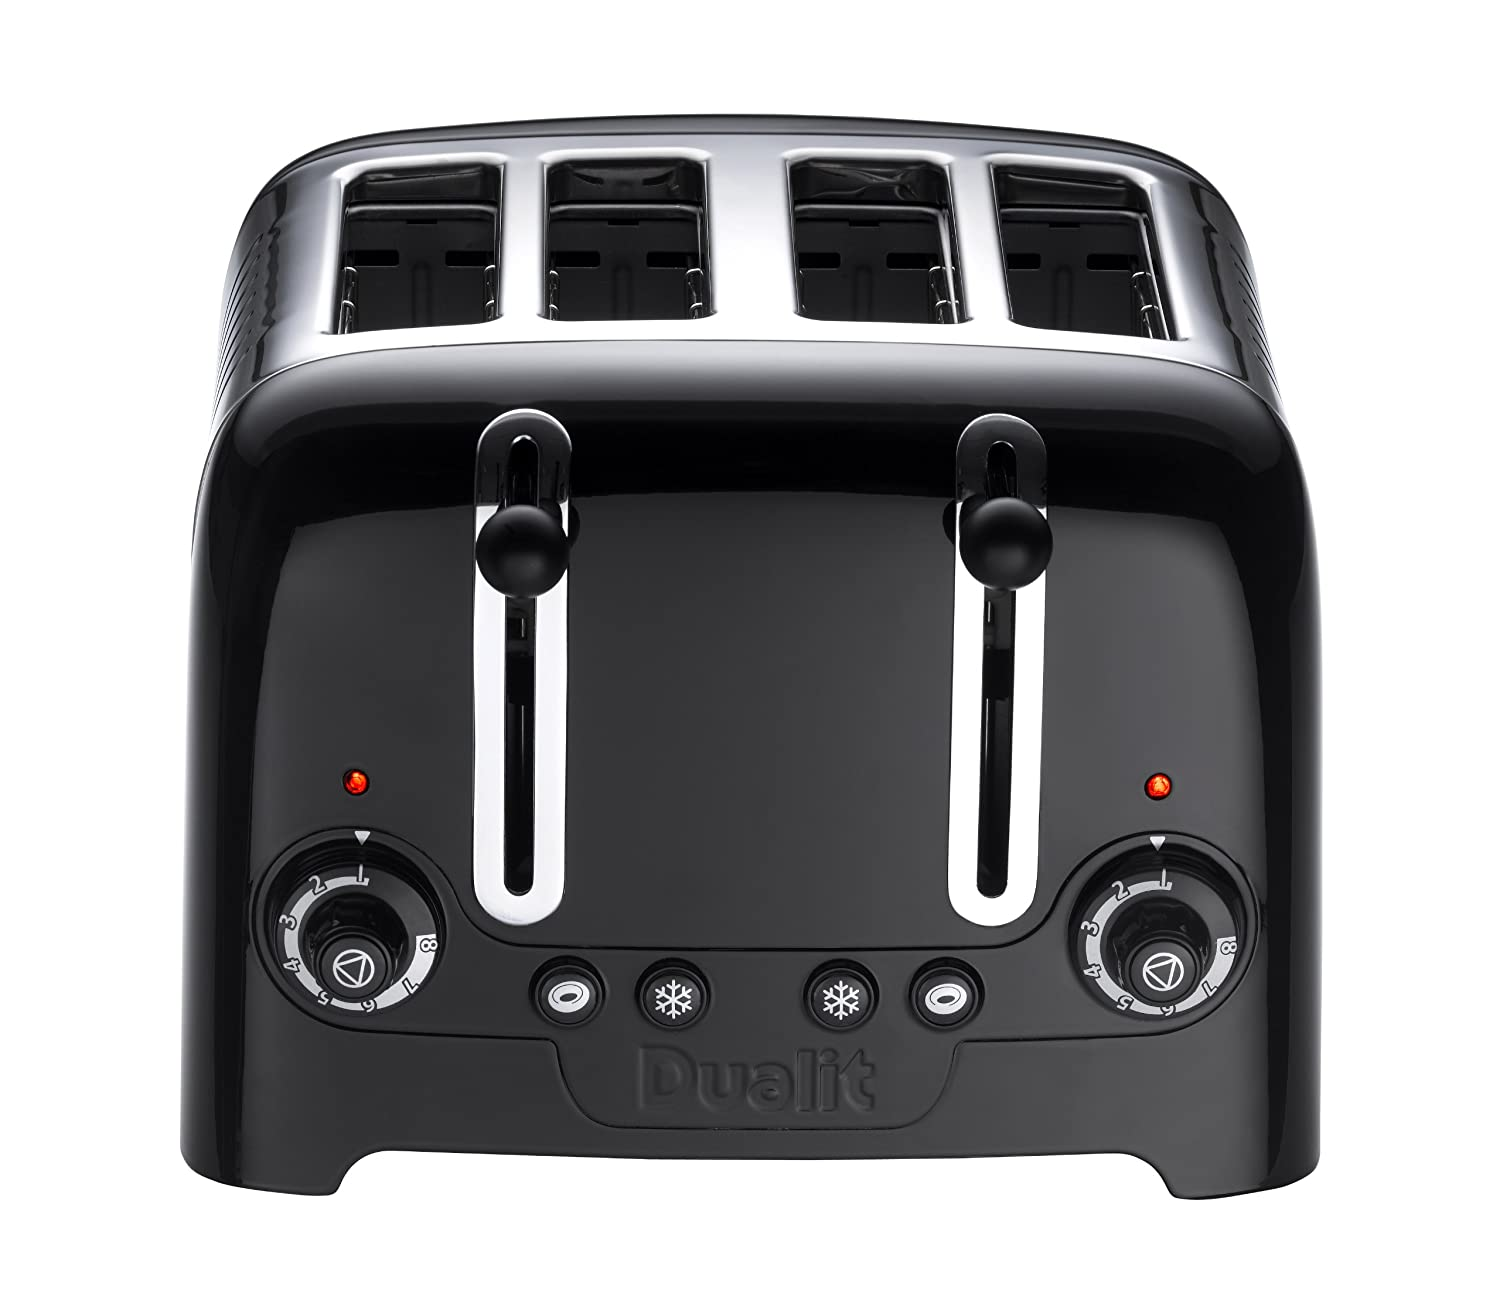 Dualit 4 Slot Lite Toaster in Black Finish Amazon